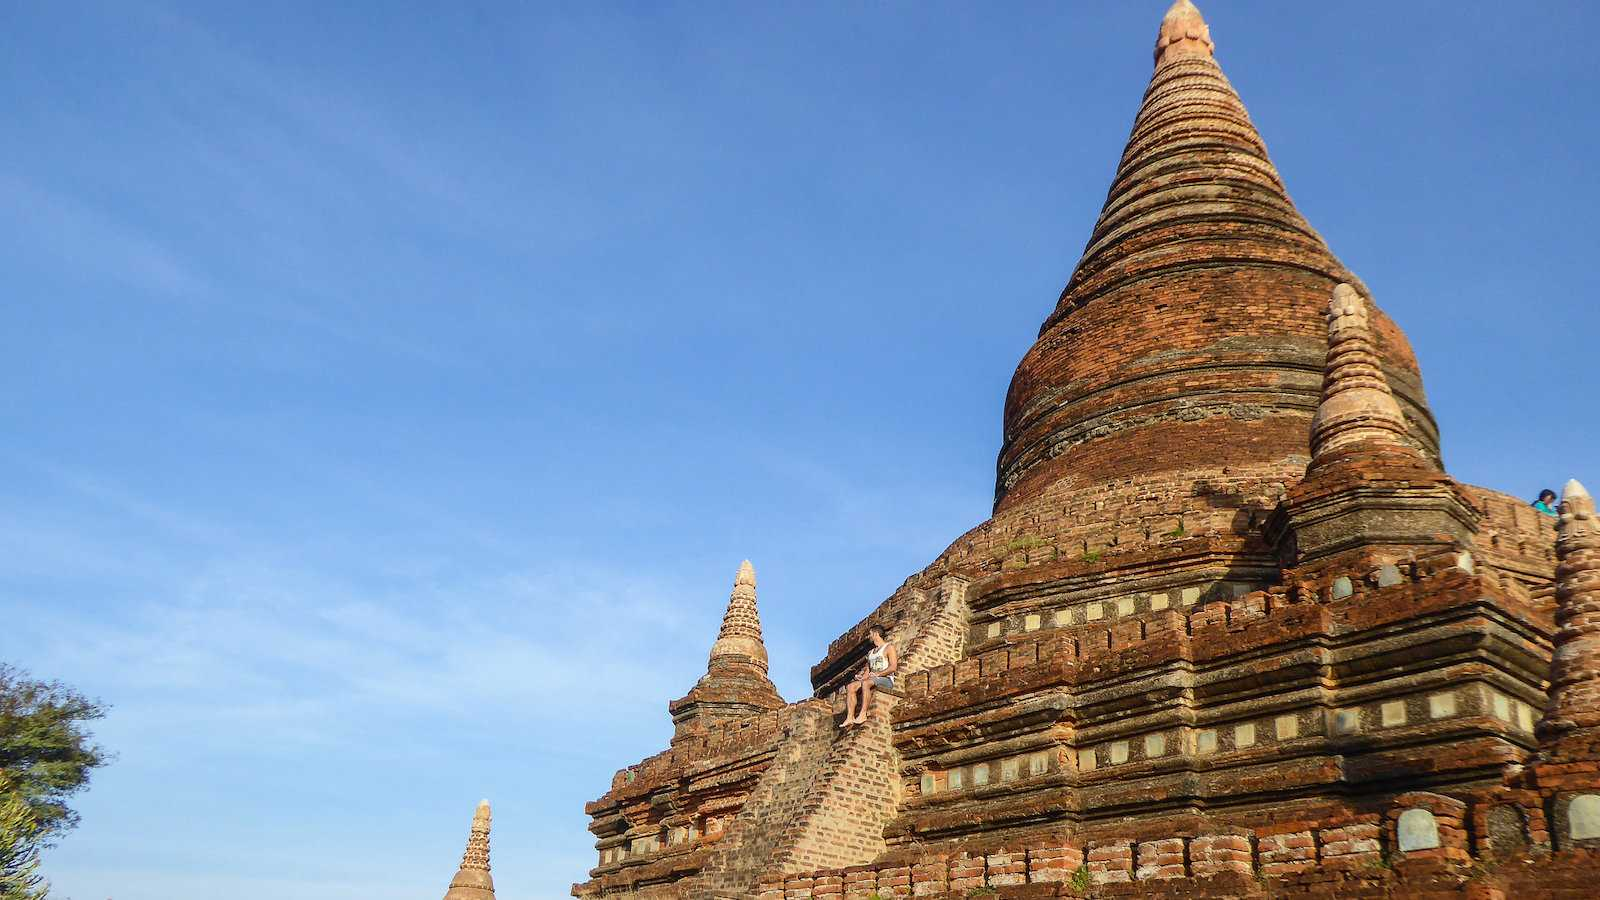 Bulethi Pagoda is a great spot for seeing both sunrise and sunset in Bagan, Myanmar